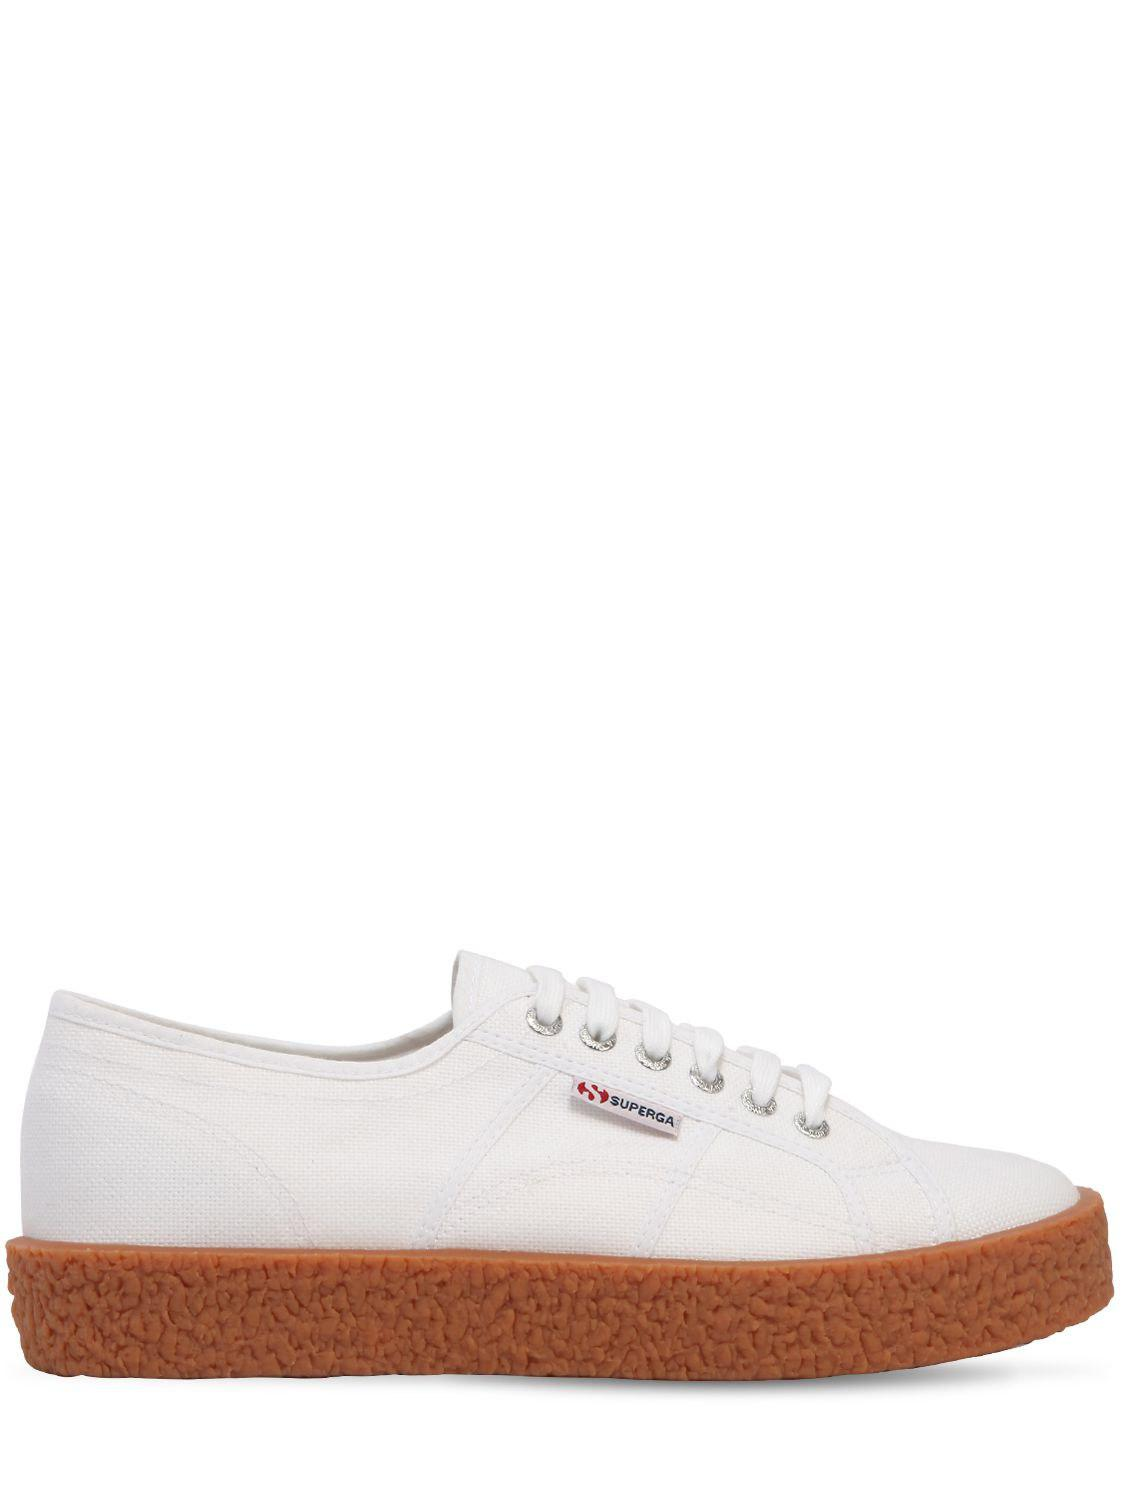 37d2218922d4fe Superga 30mm Hohe Sneakers Aus Canvas